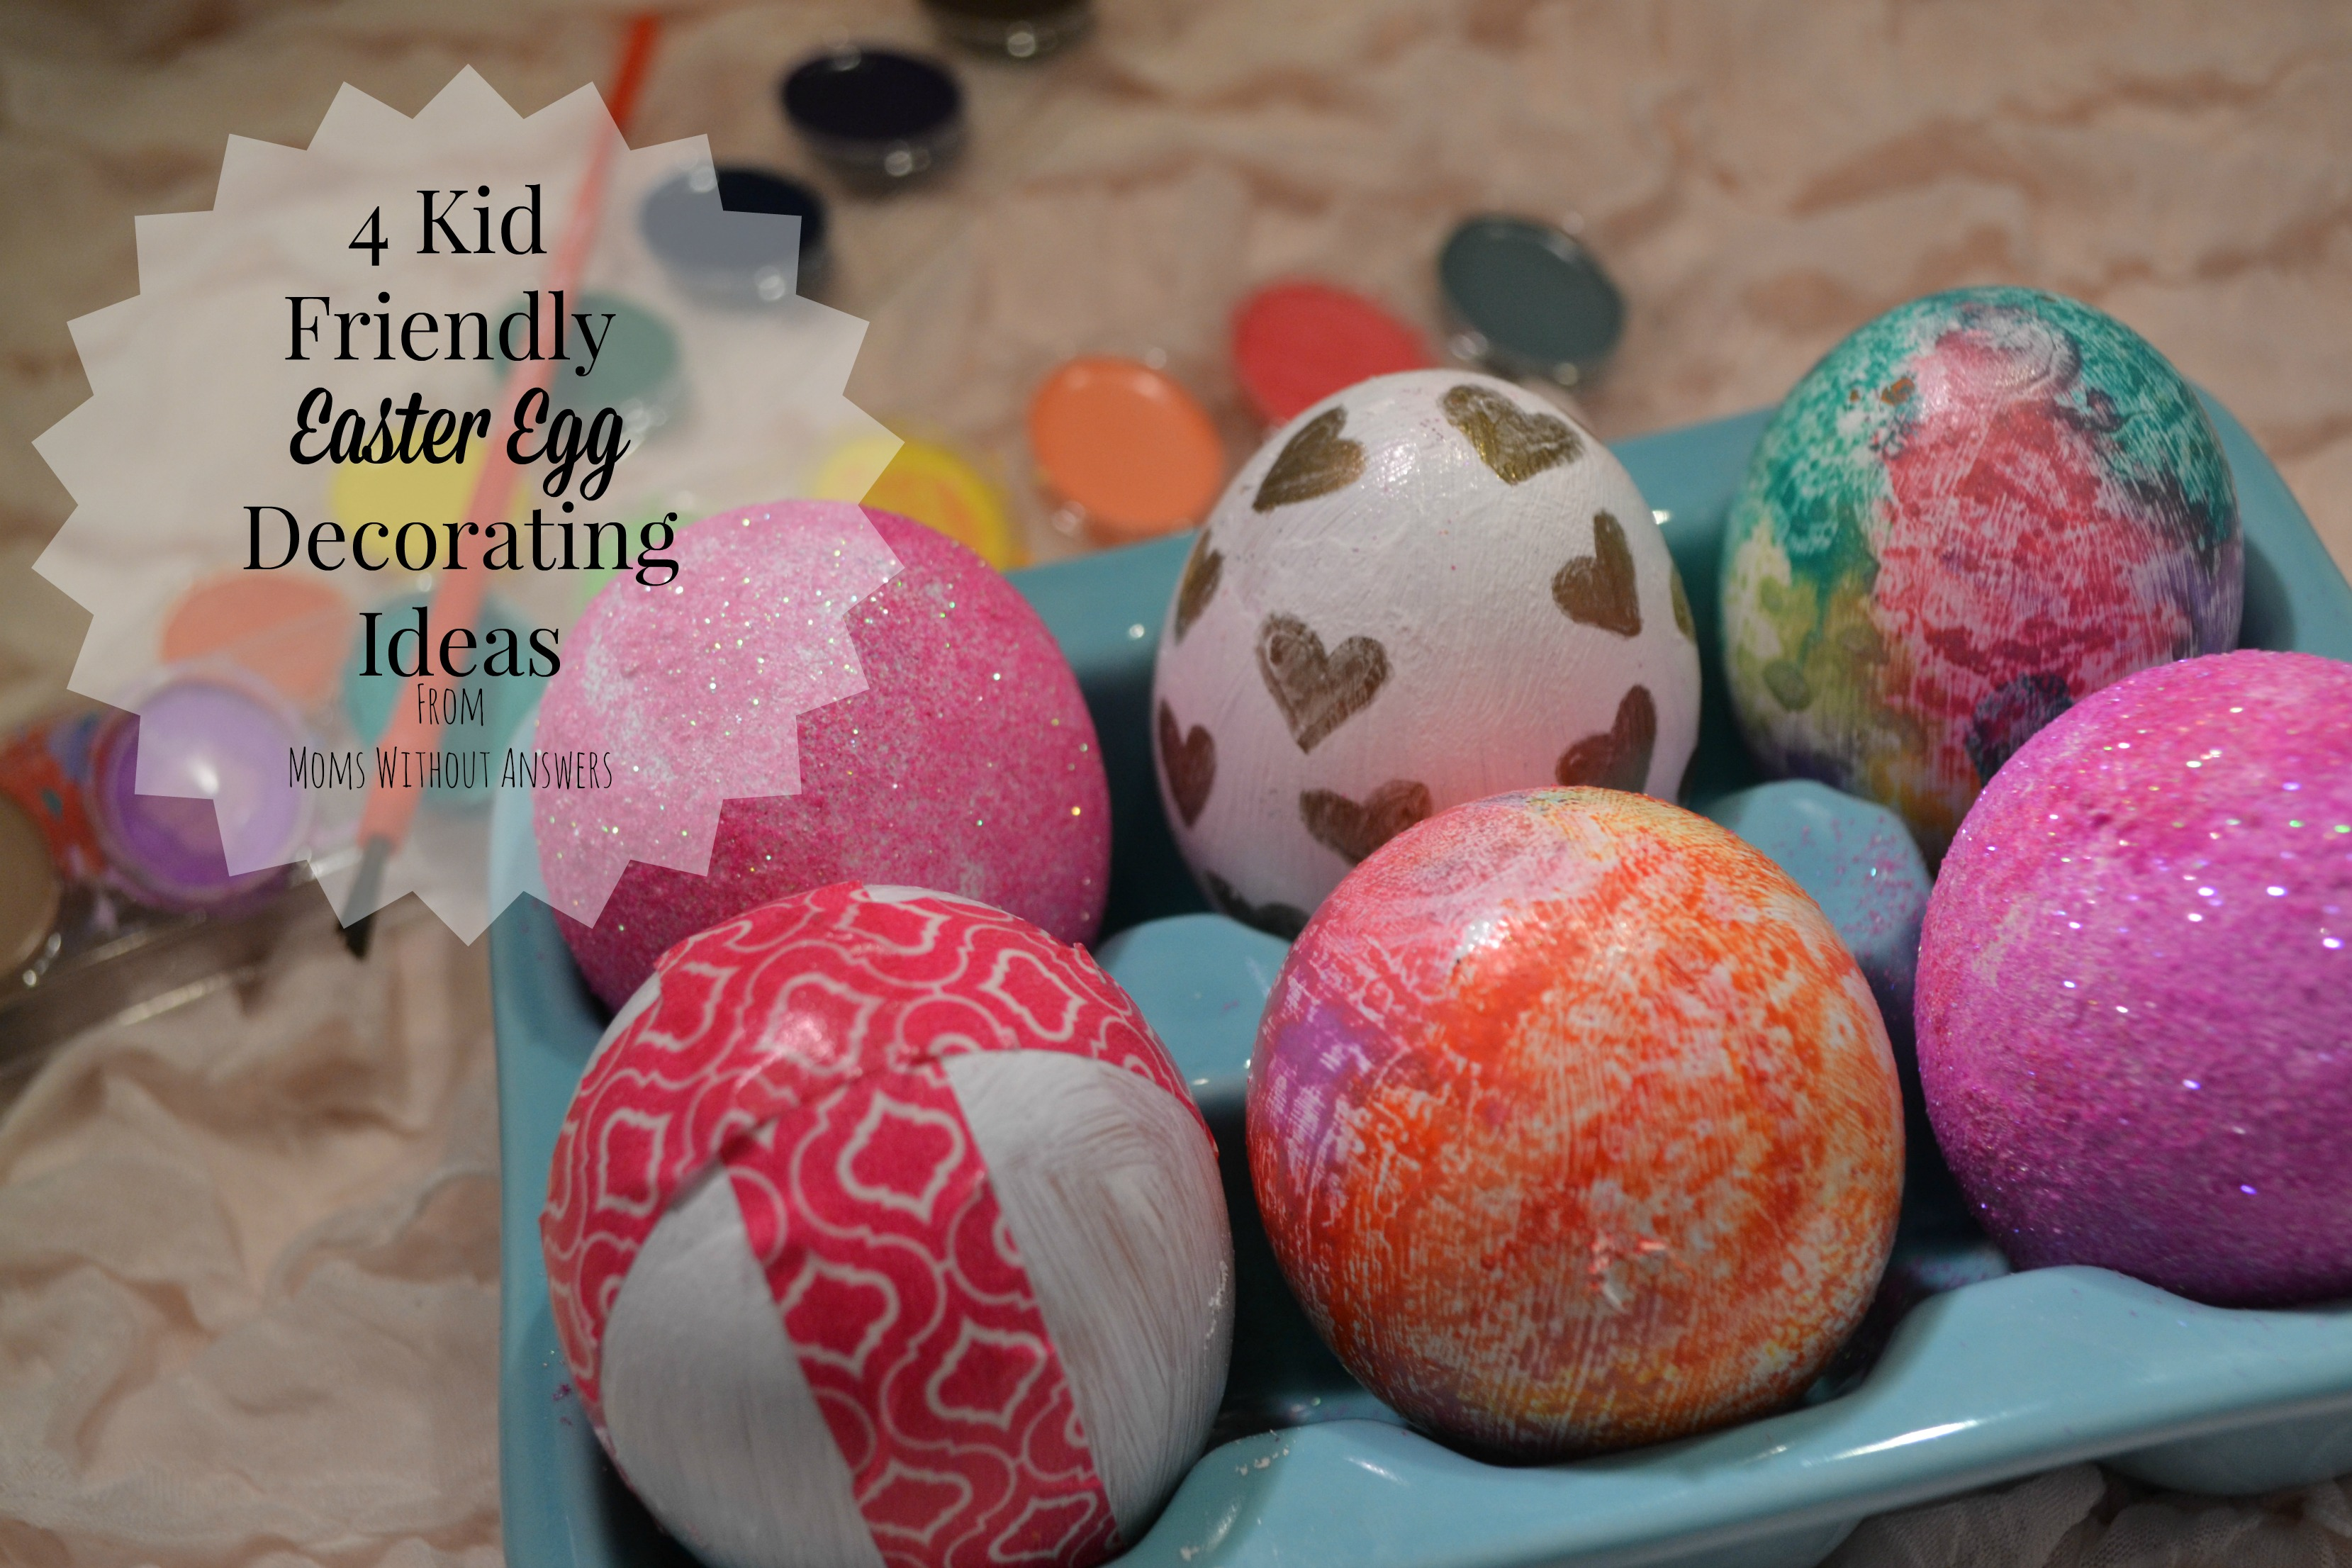 4 Easy and Creative Ways to Decorate Easter Eggs